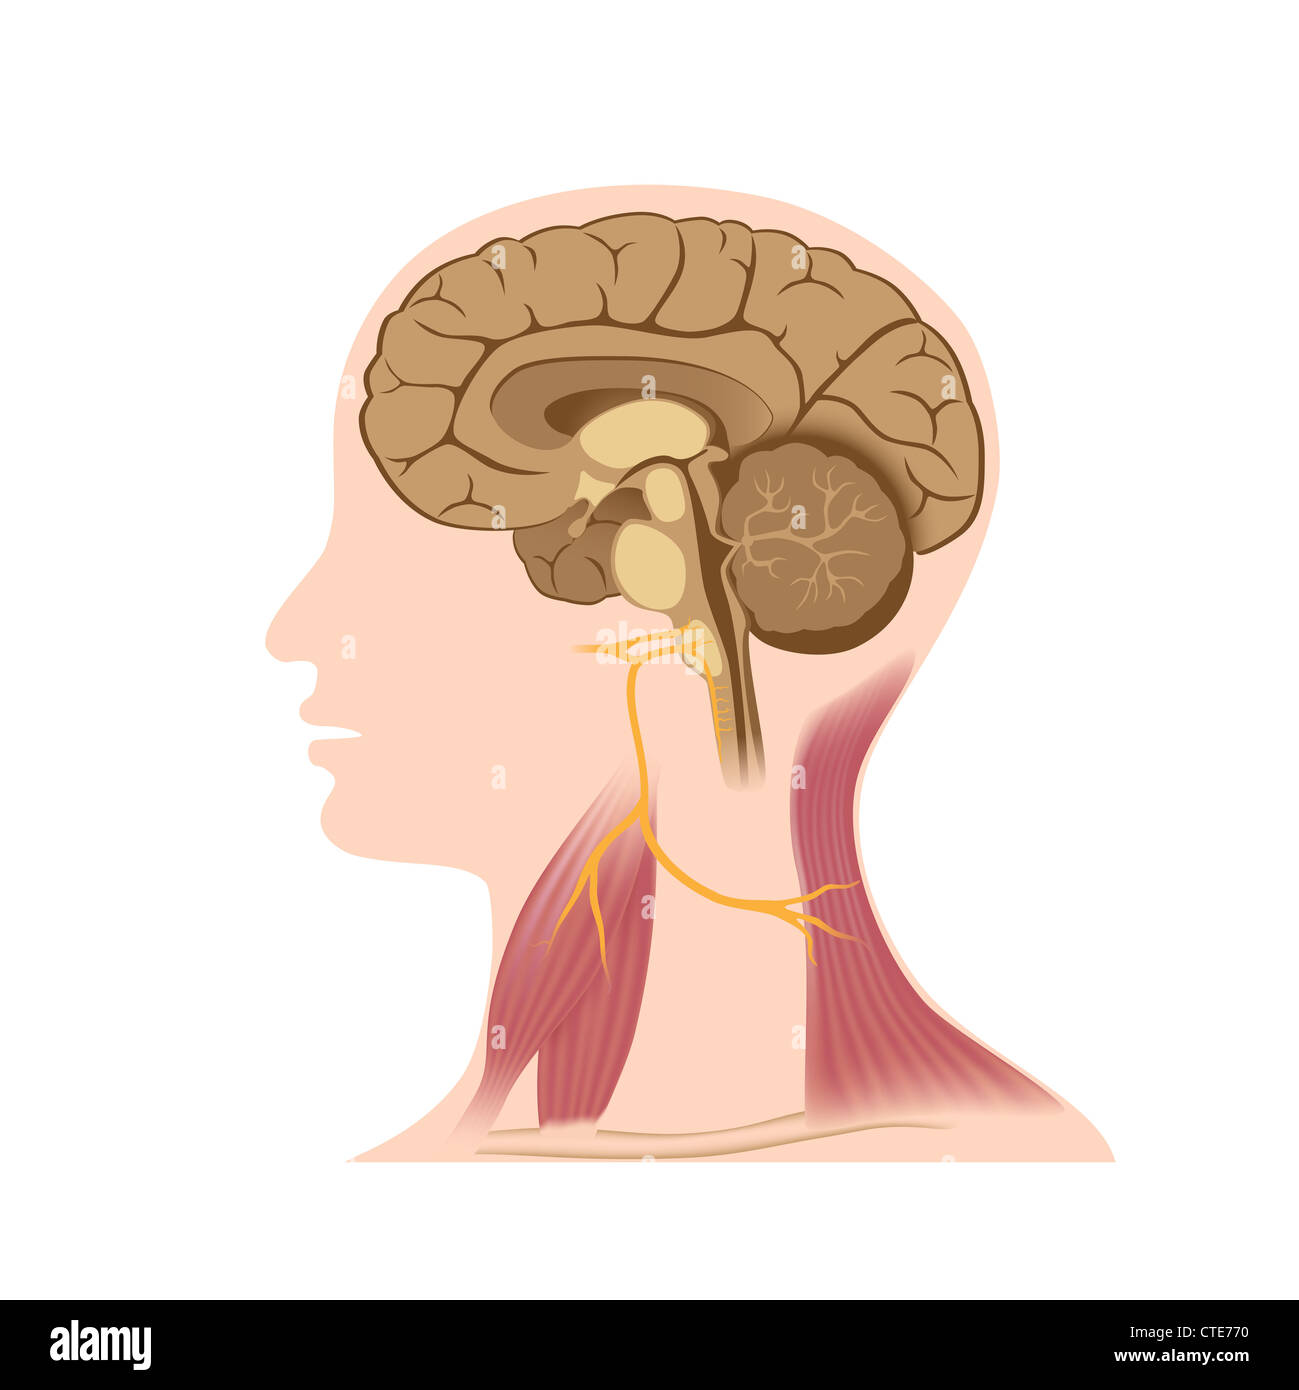 Accessory and vagus nerve Stock Photo: 49485492 - Alamy